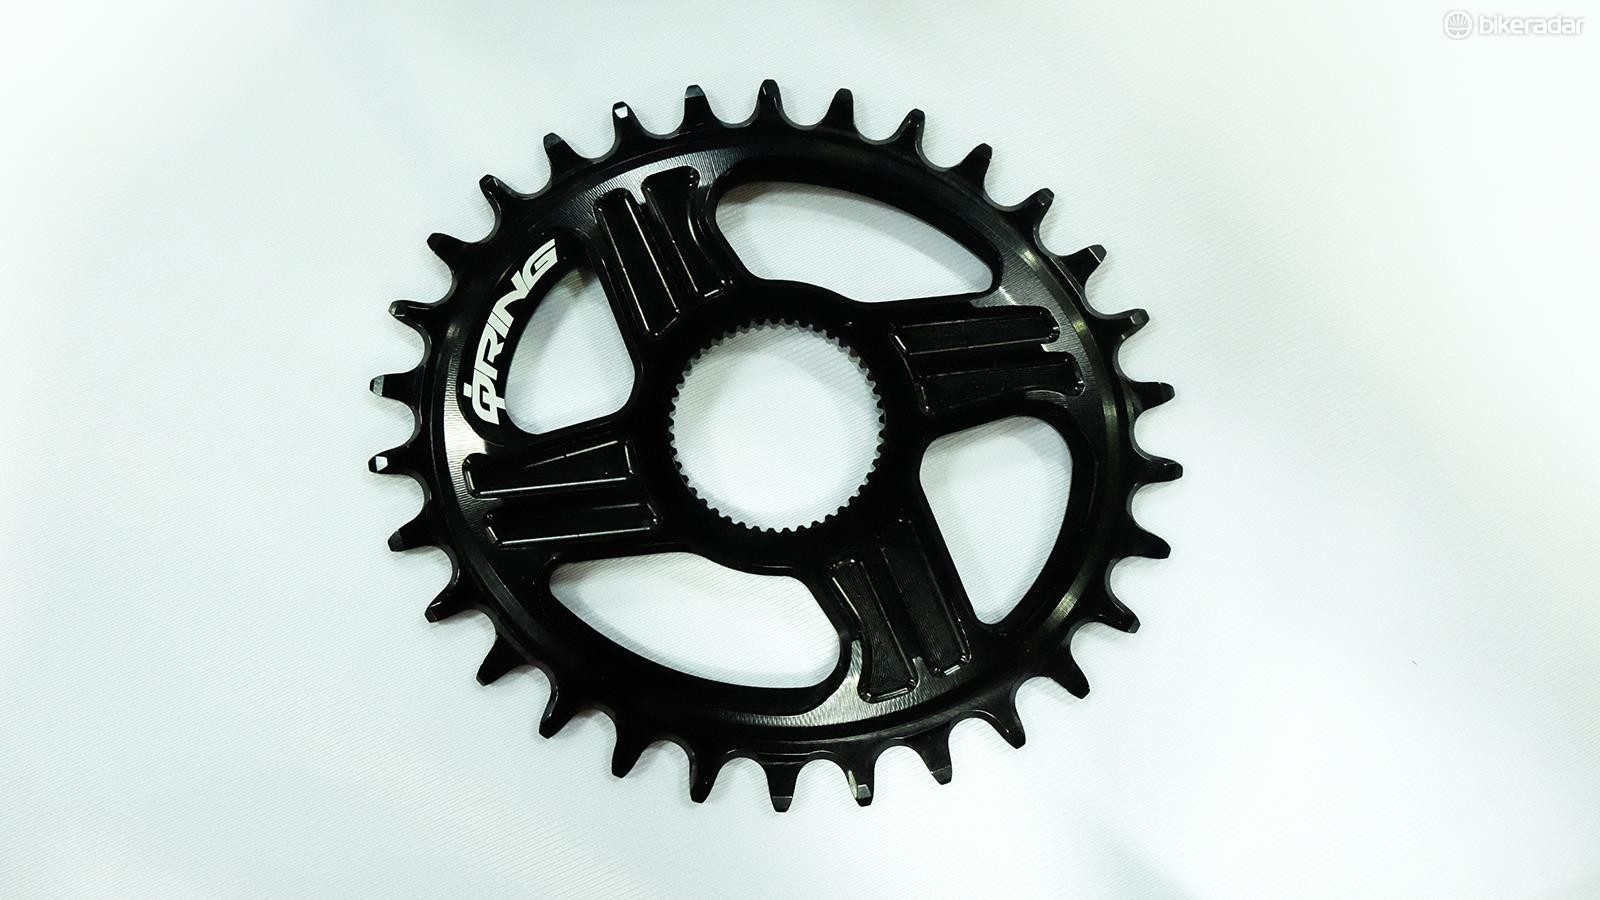 Rotor's new direct mount QX rings are available in 30, 32 and 34t versions